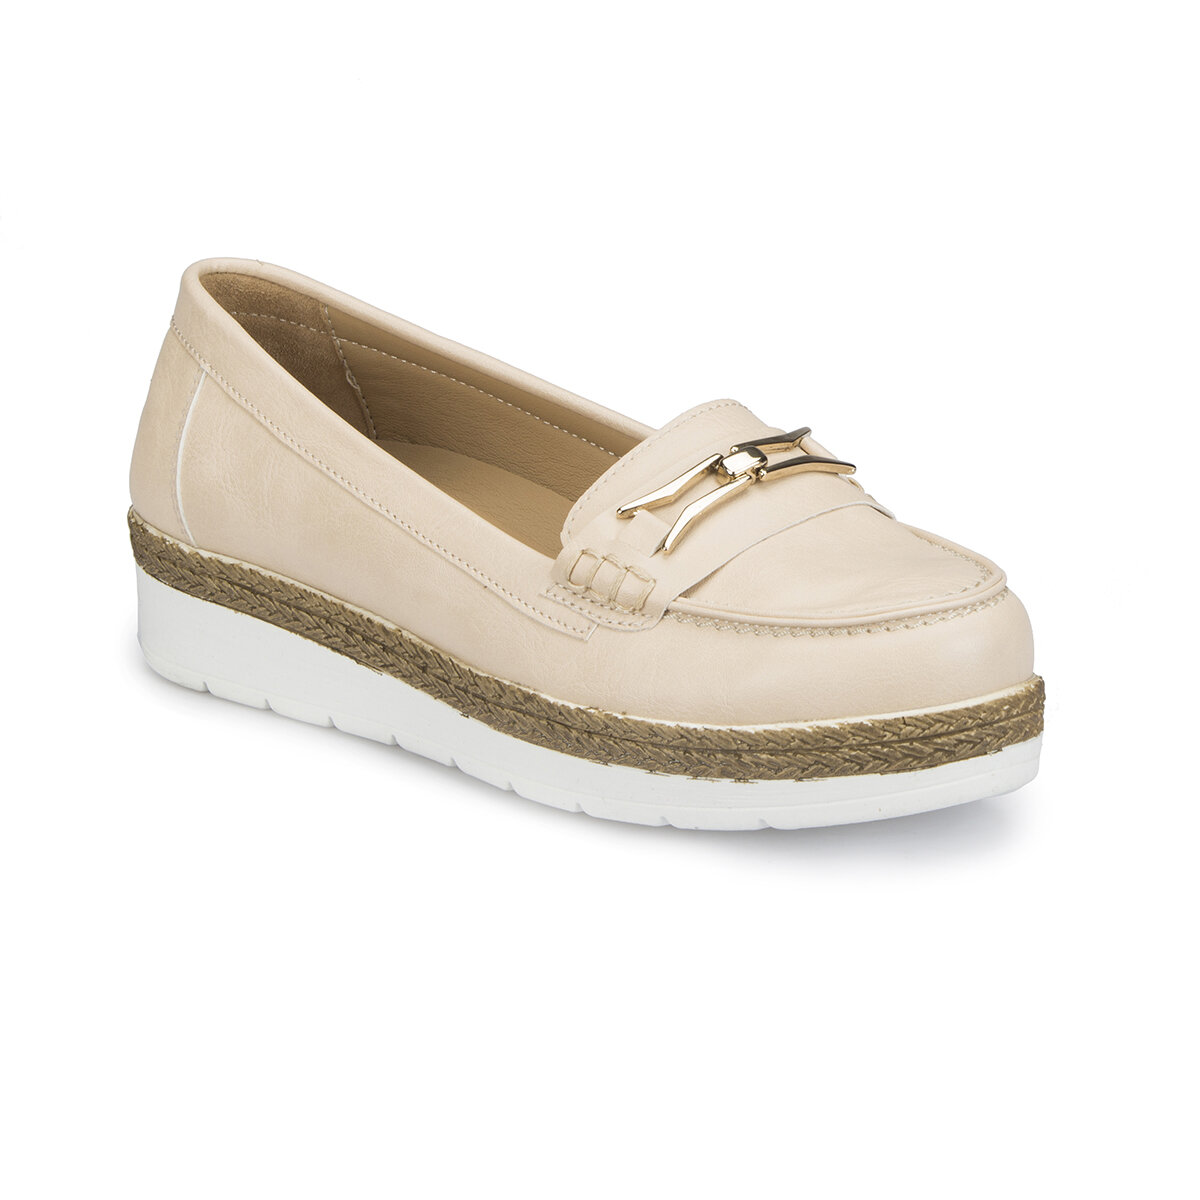 FLO 81.111293.Z Beige Women Basic Comfort Polaris